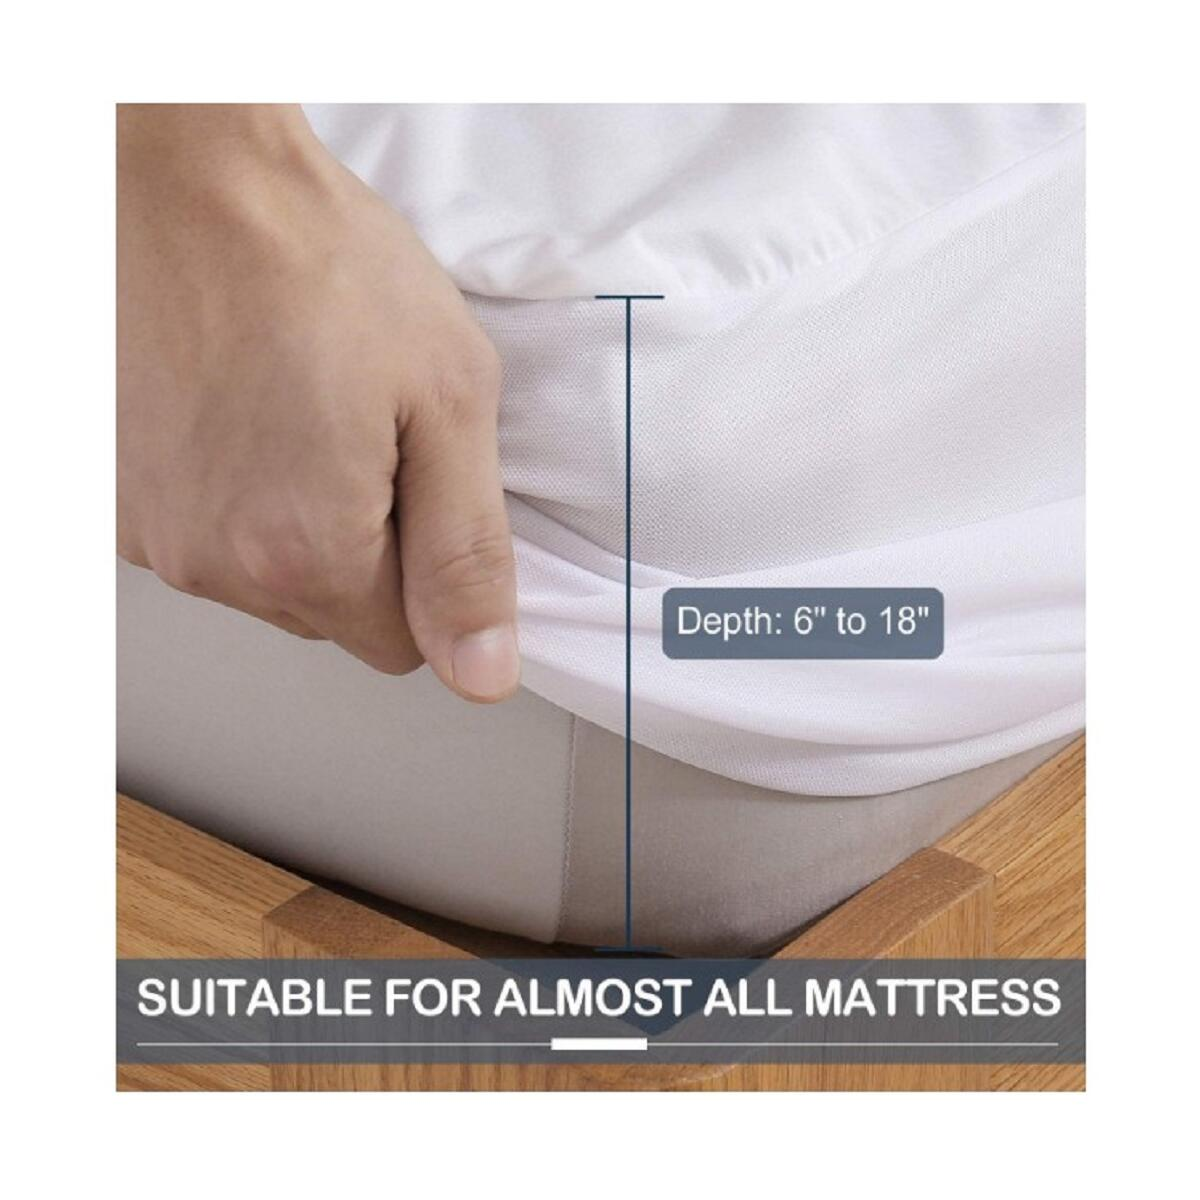 Eggishorn Premium Cooling Bamboo Mattress Protector, 100% Waterproof Breathable Mattress Pad Cover, Against Moisture & Dust,‎ Hypoallergenic, Unique Design for Different Mattress Depth-King Size